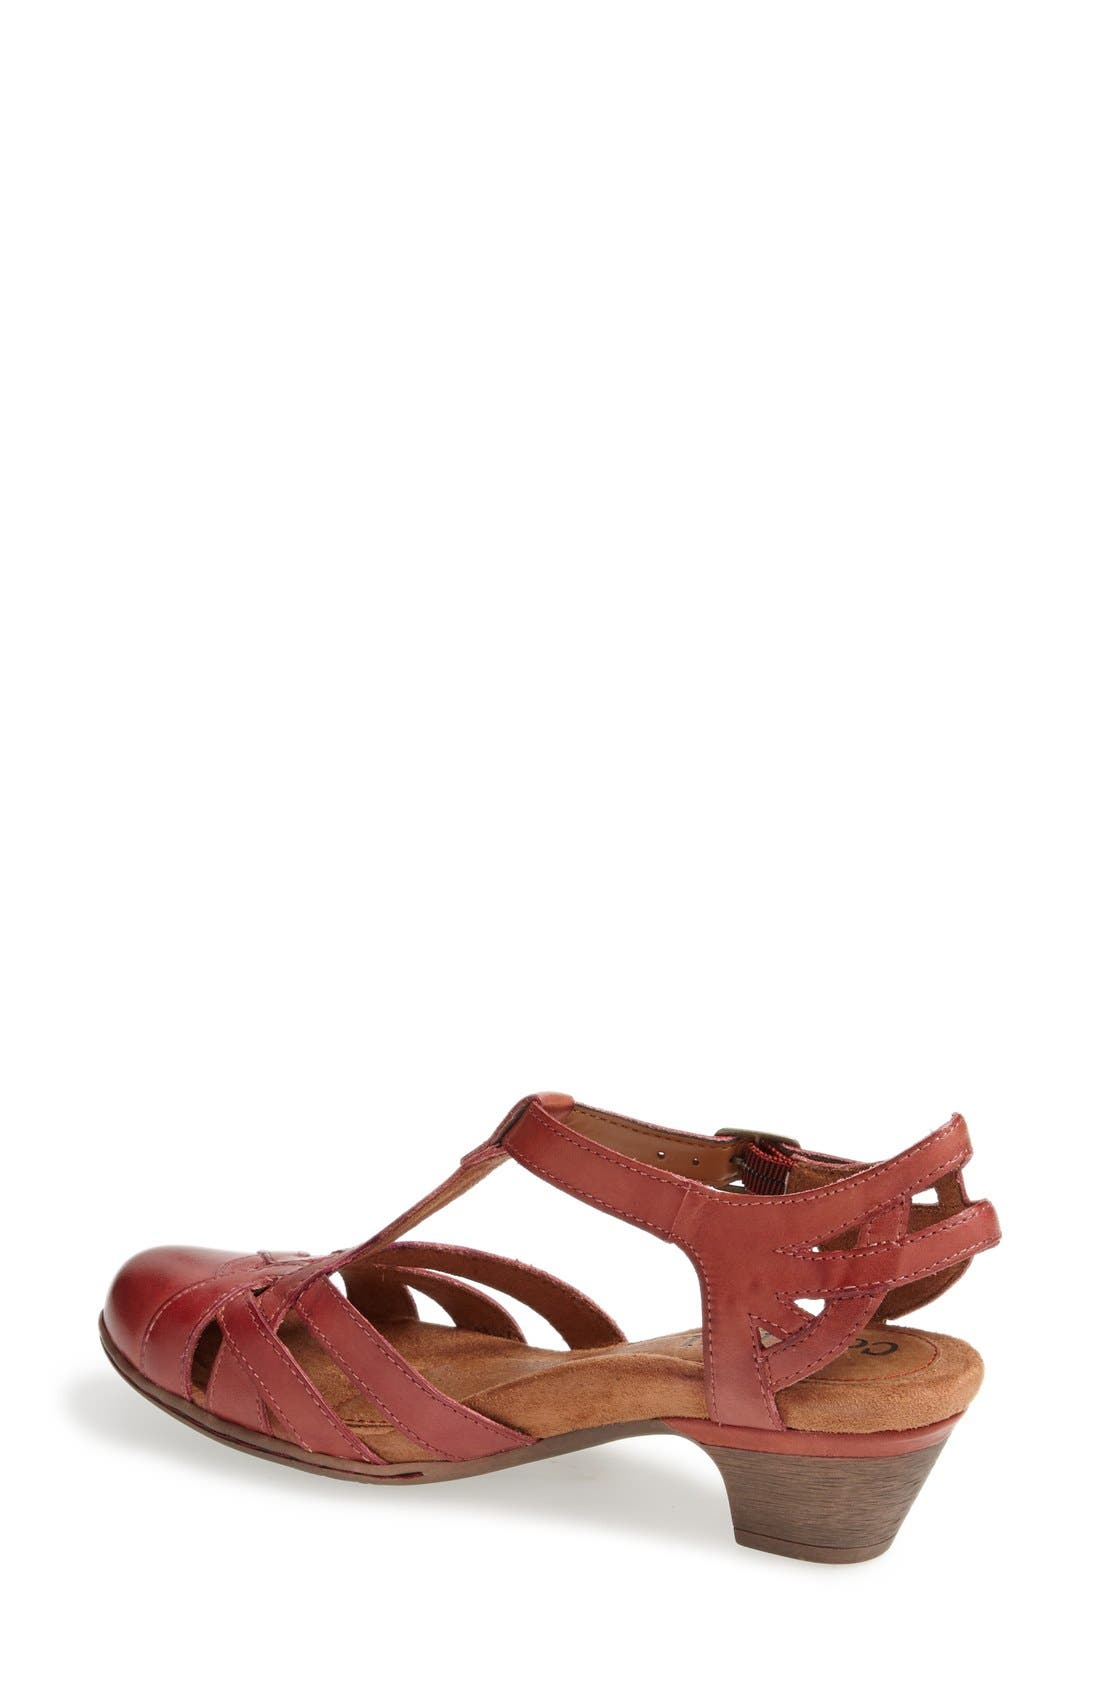 'Aubrey' Sandal,                             Alternate thumbnail 29, color,